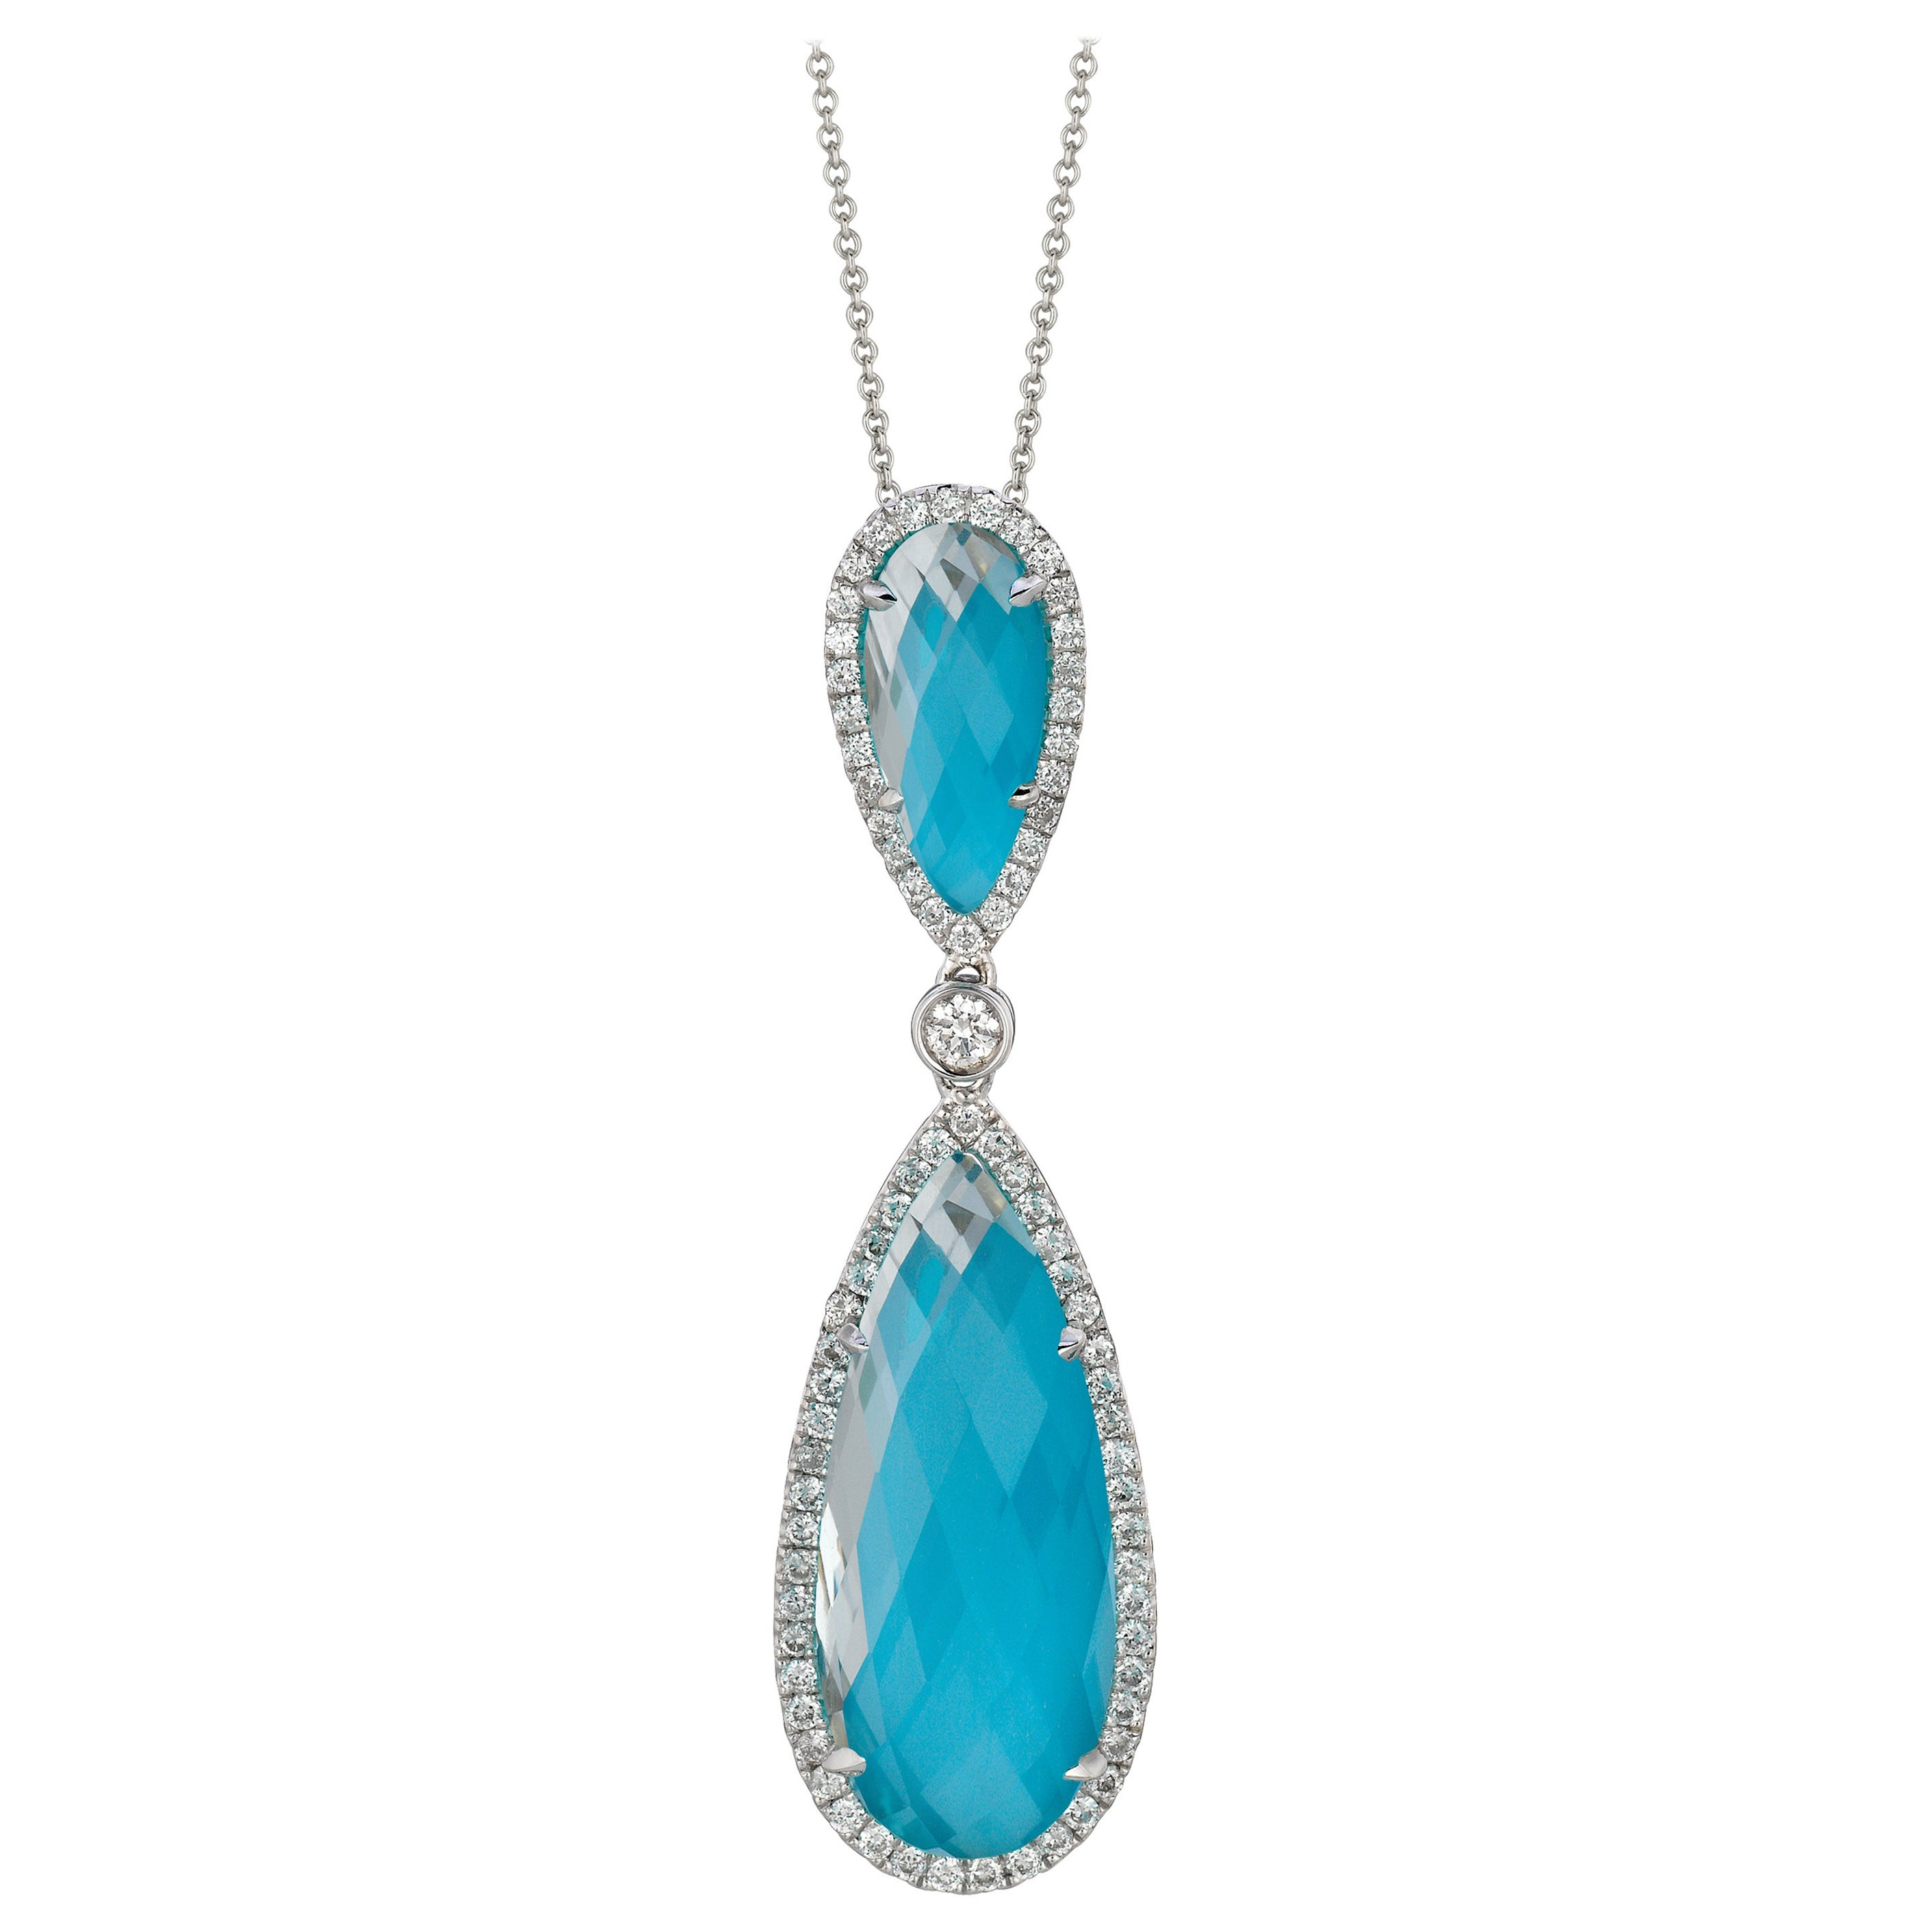 Doves 18K White Gold Pear Shape Necklace with White Topaz, Turquoise & Diamonds